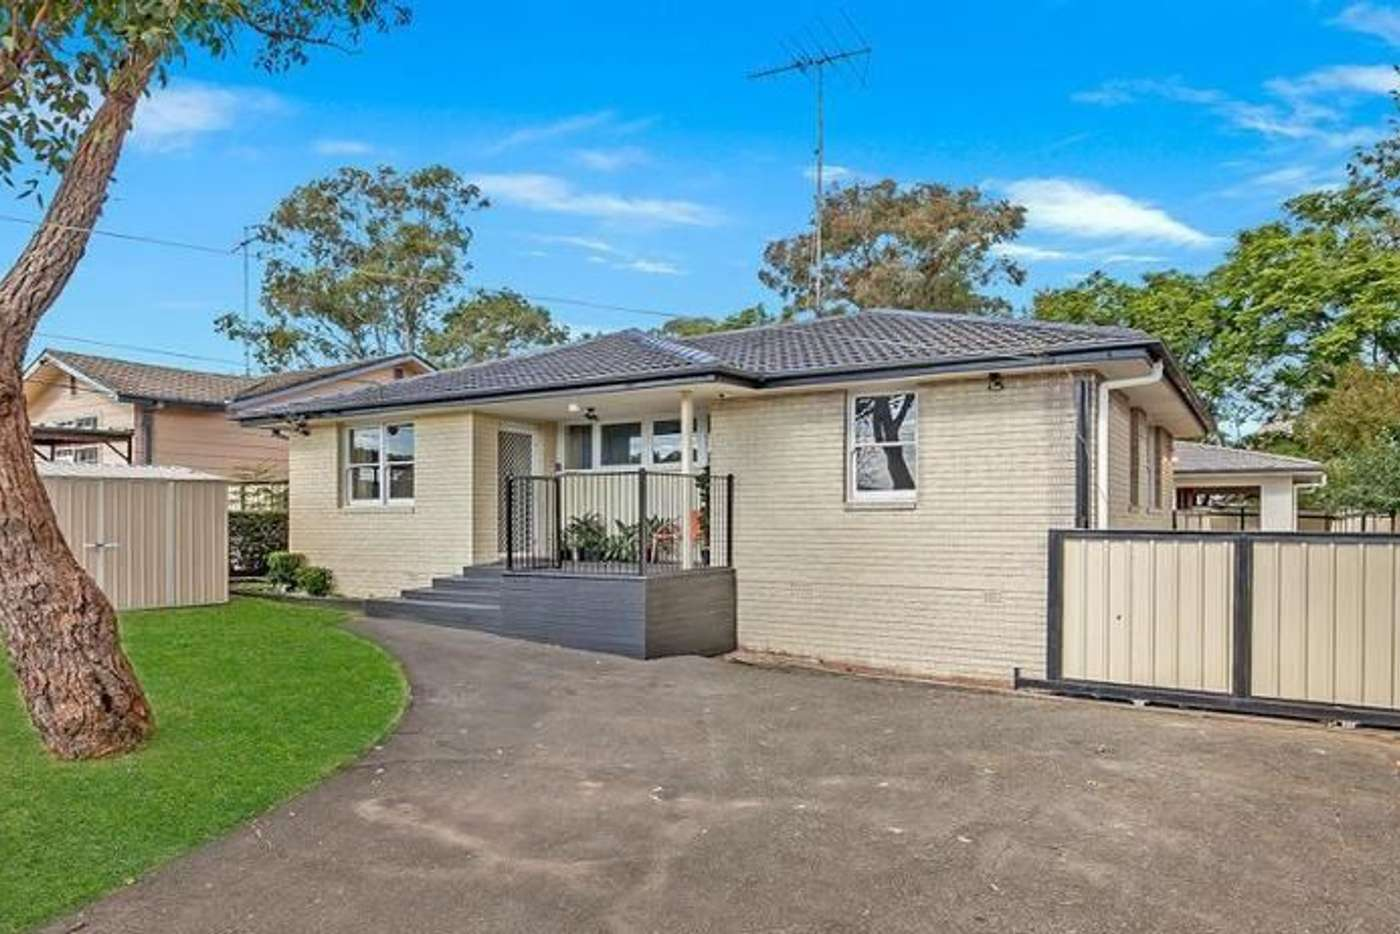 Main view of Homely house listing, 11 Colbeck Street, Tregear NSW 2770